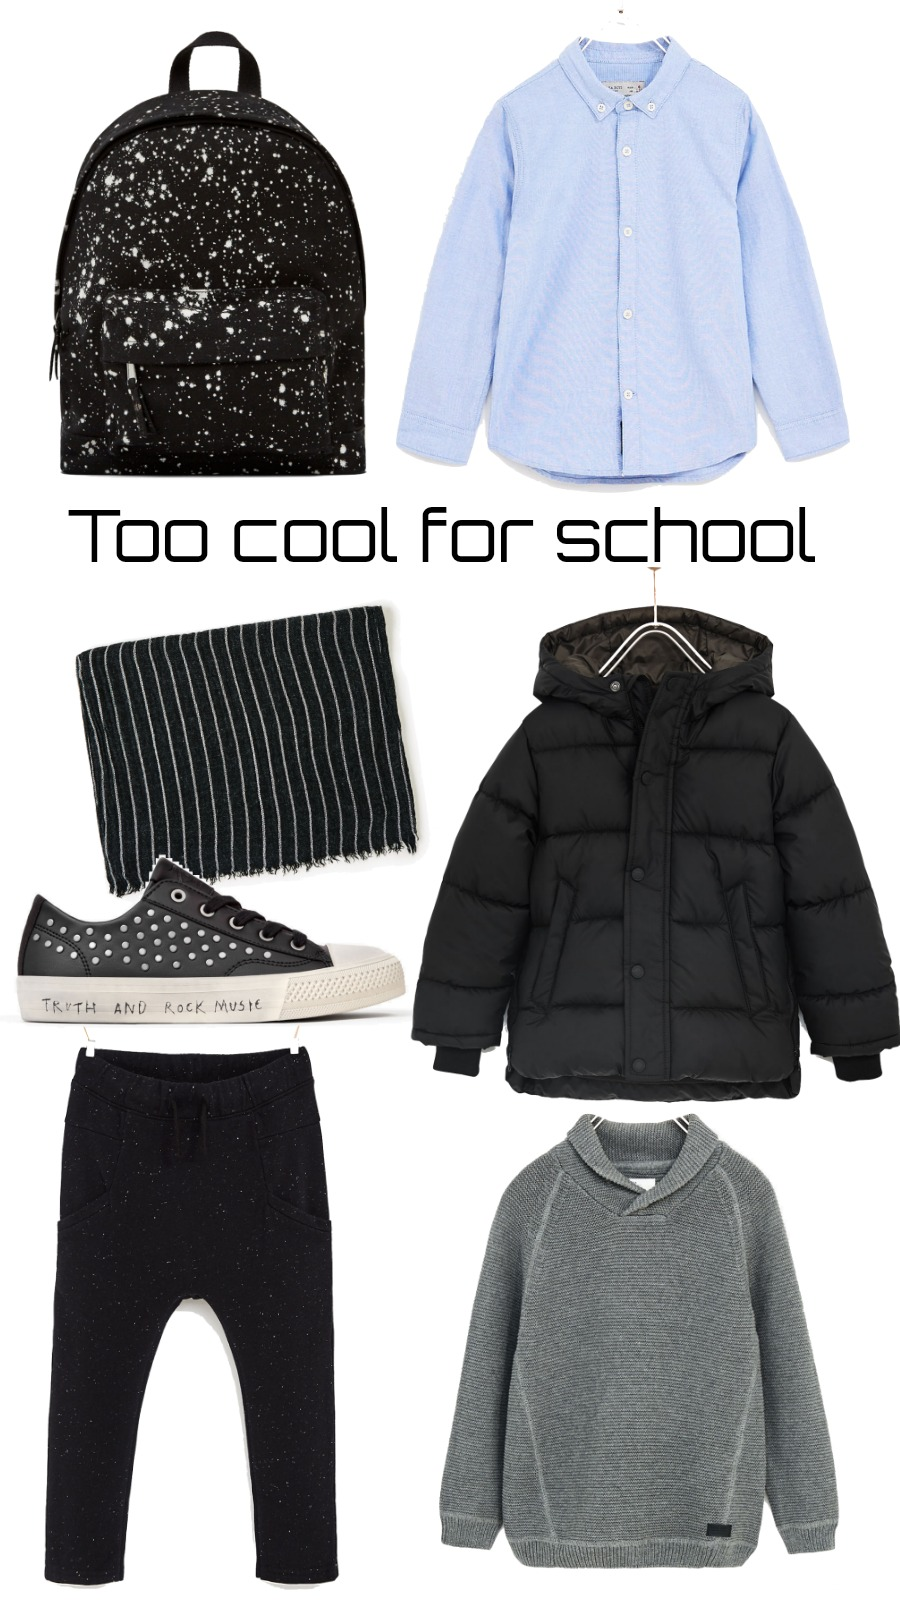 Too cool for school – boy